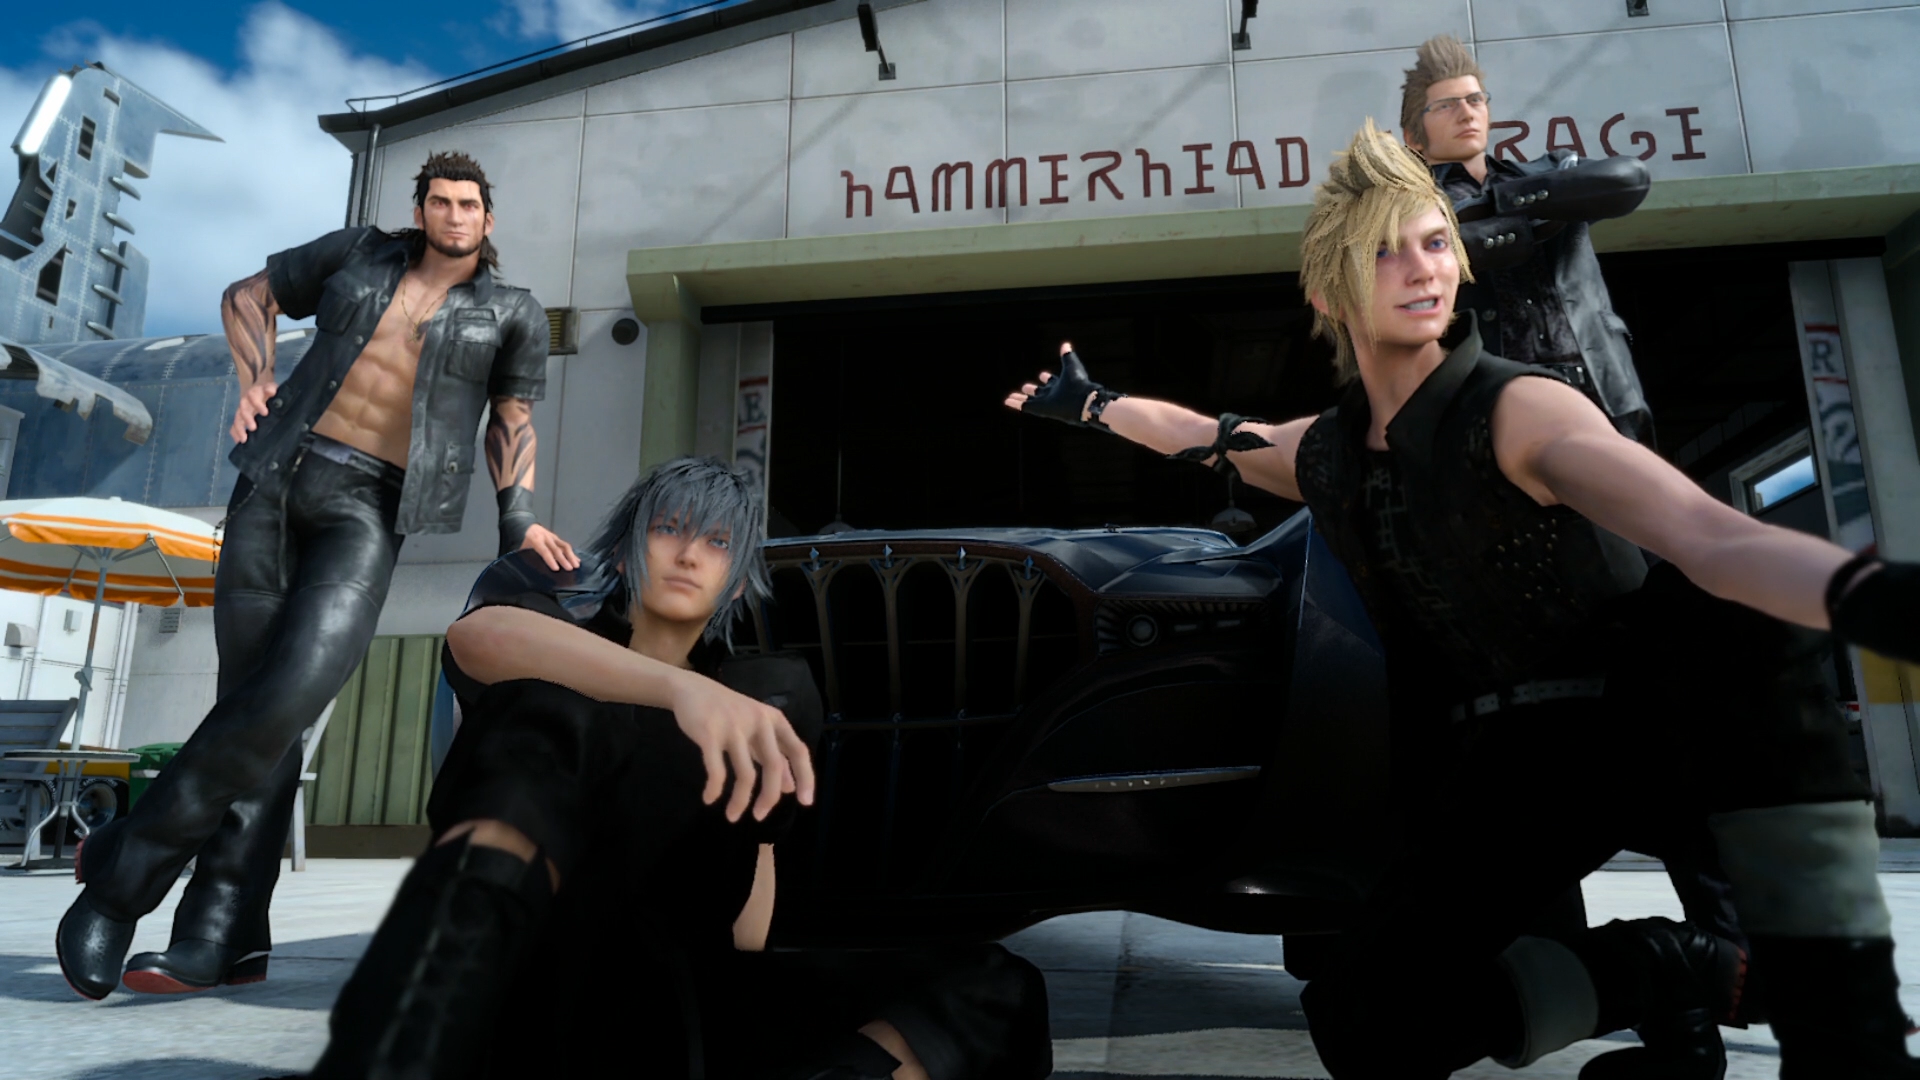 Final fantasy xv guide hub top tips tricks for your for Final fantasy 15 fishing guide